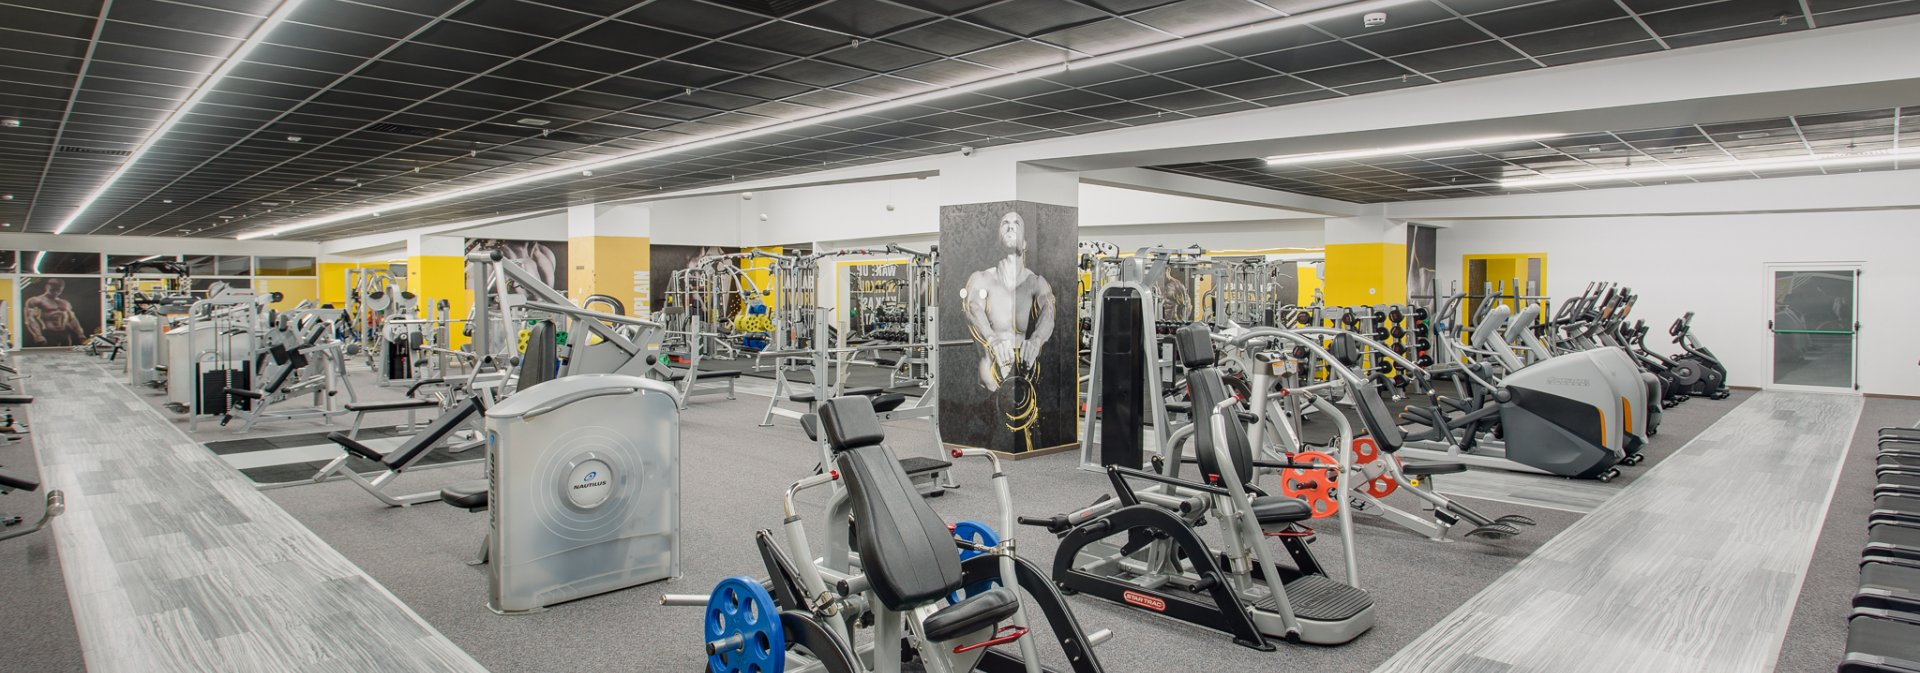 Connect Fitness Center, Suceava